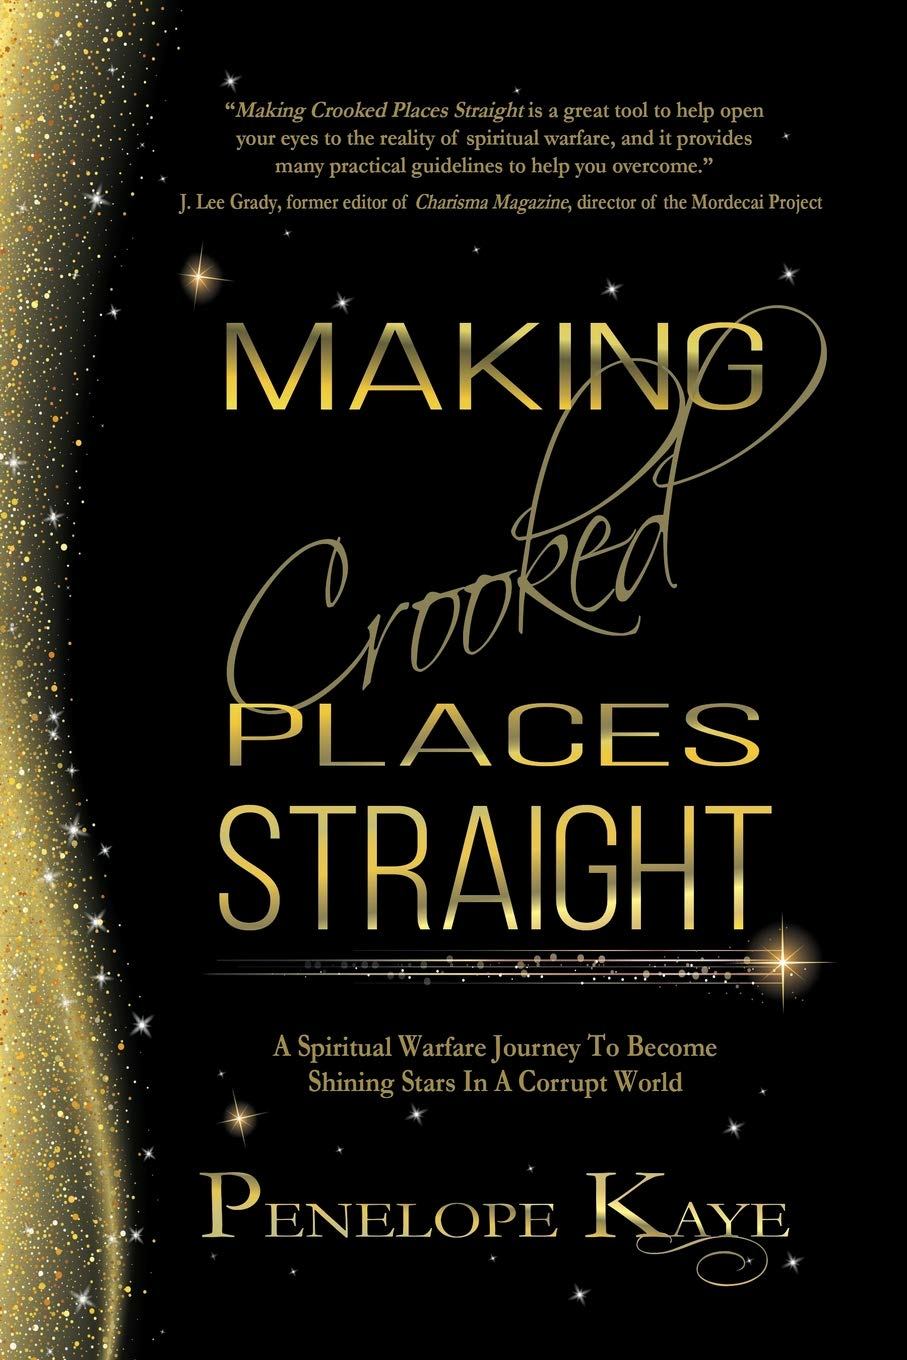 Making Crooked Places Straight: A Spiritual Warfare Journey to